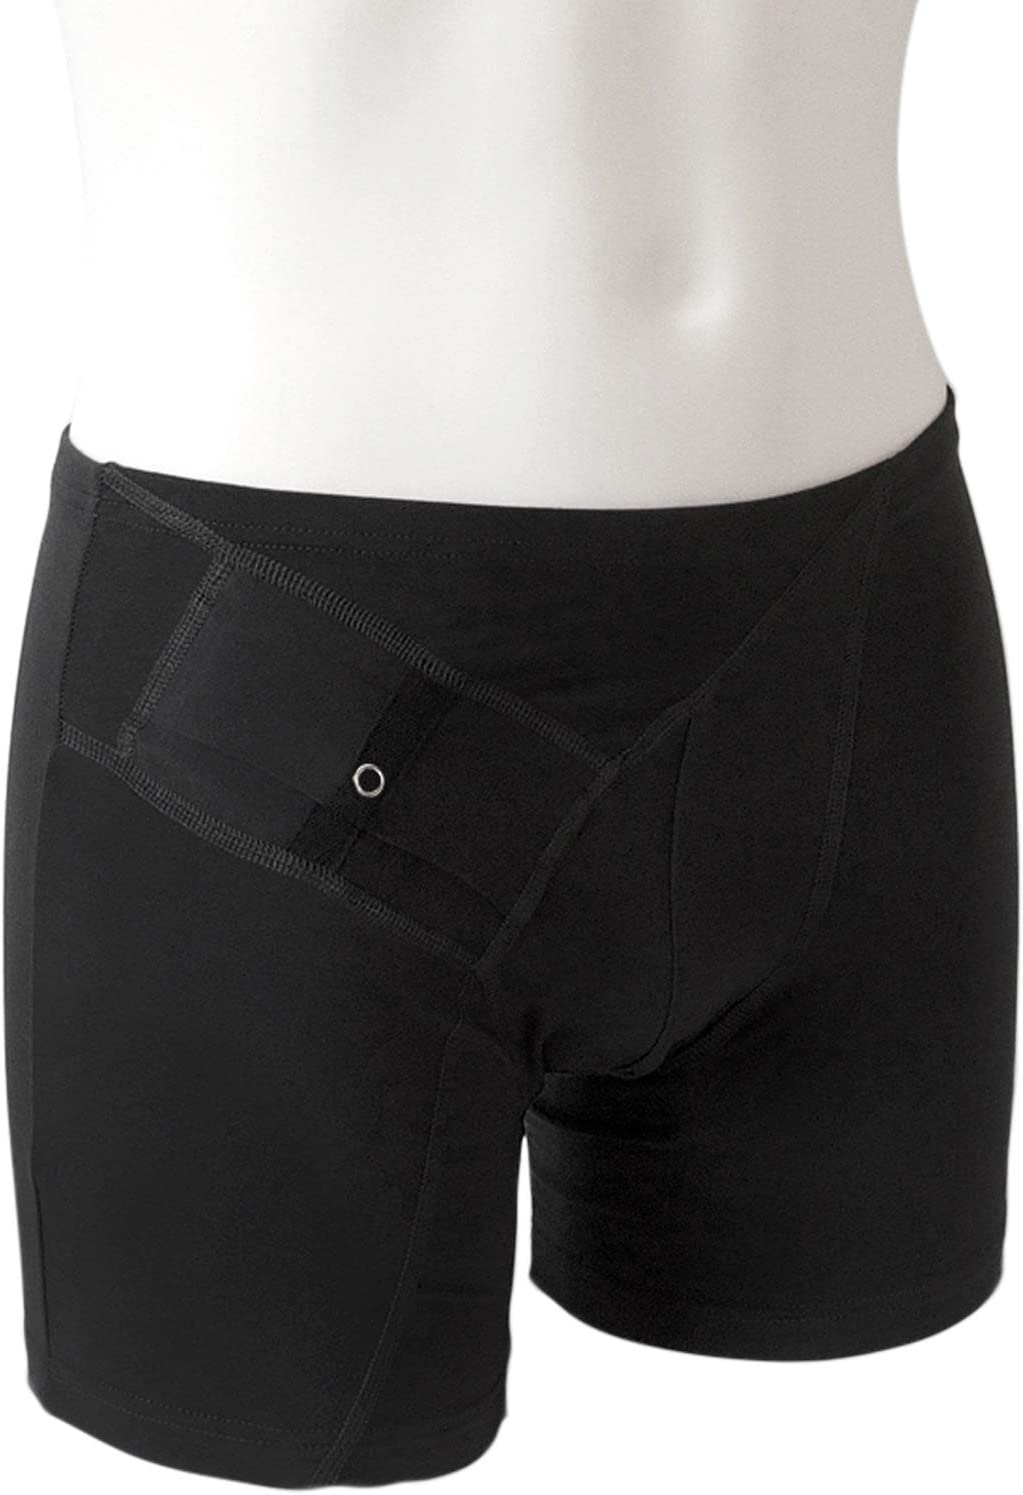 AnnaPS Men's Diabetes Medium Black Shorts for Pocket Boxer 5 ☆ very Gifts popular with